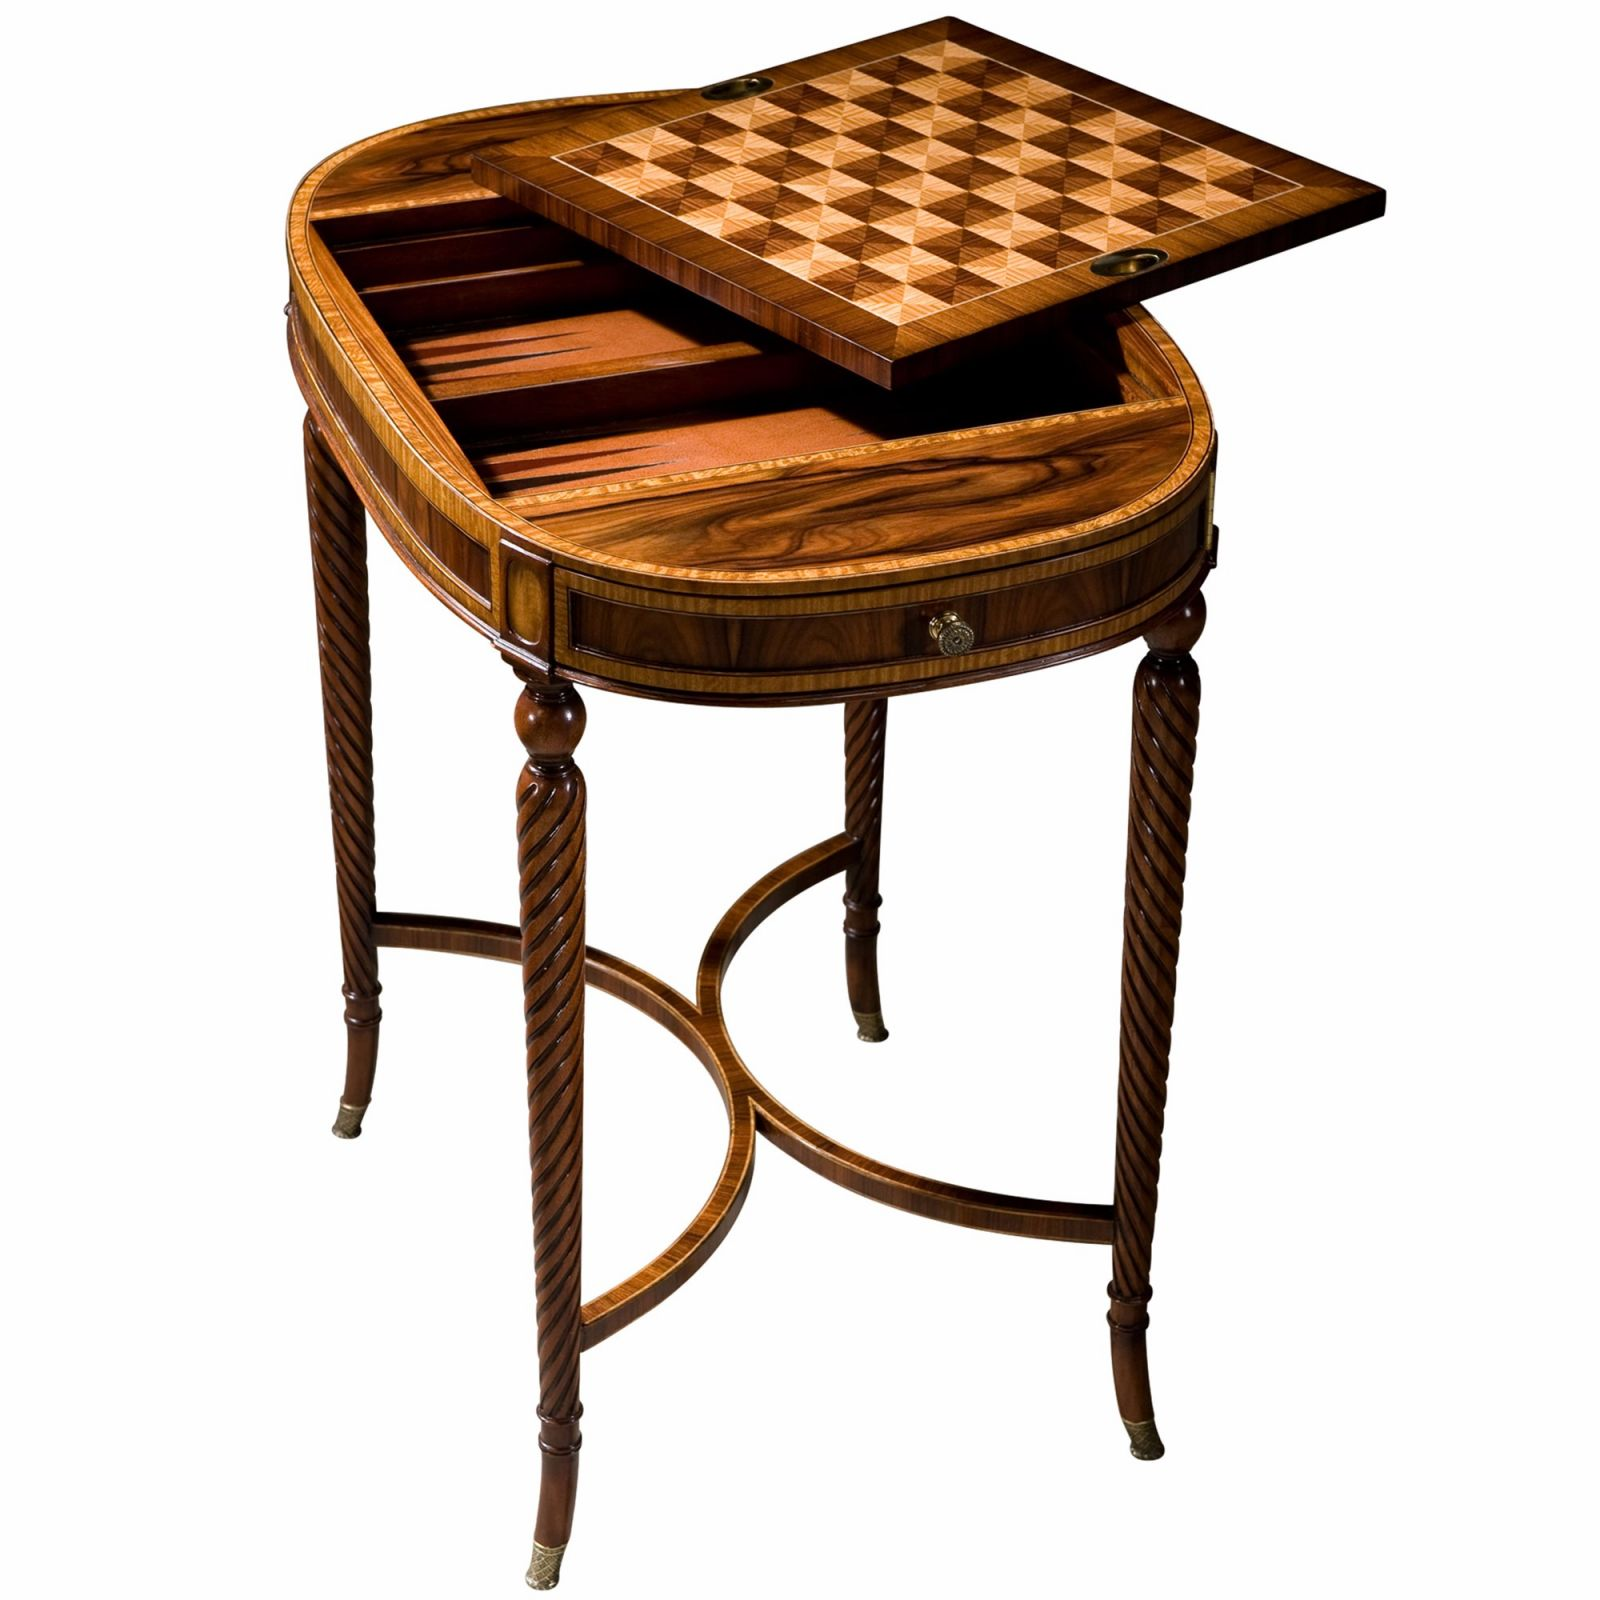 A rosewood tray top table